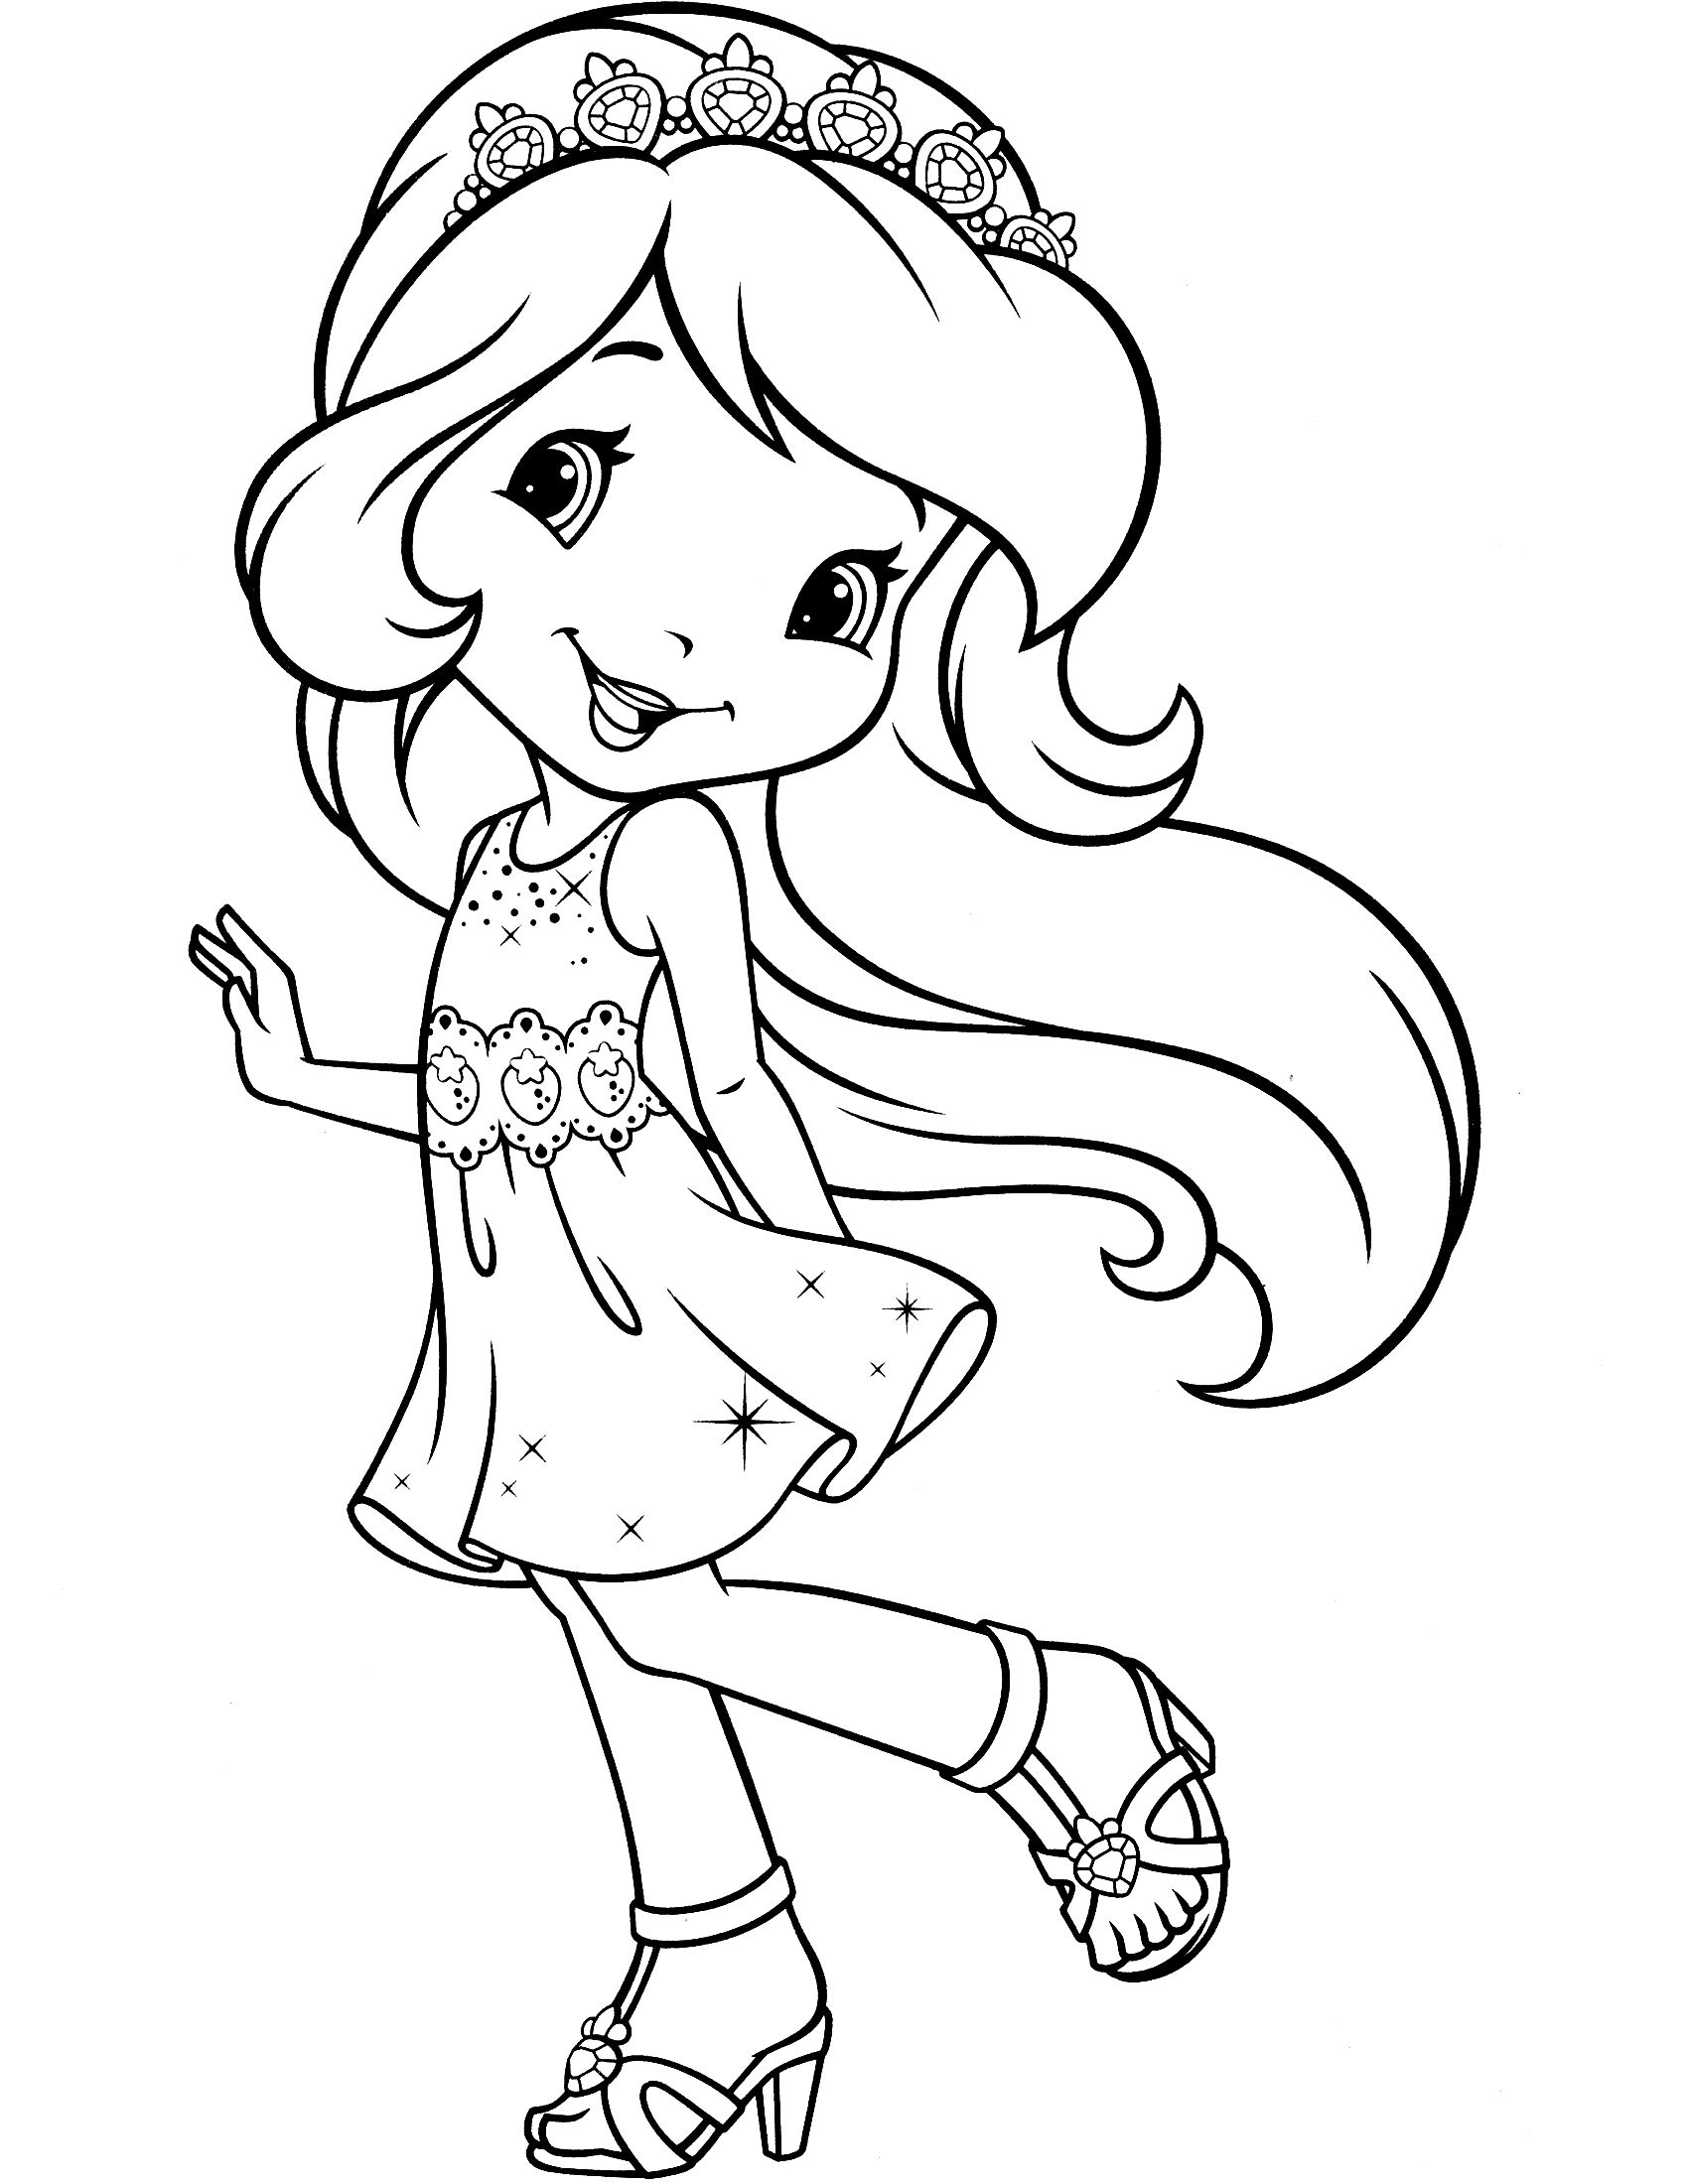 strawberry shortcake printables strawberry shortcake